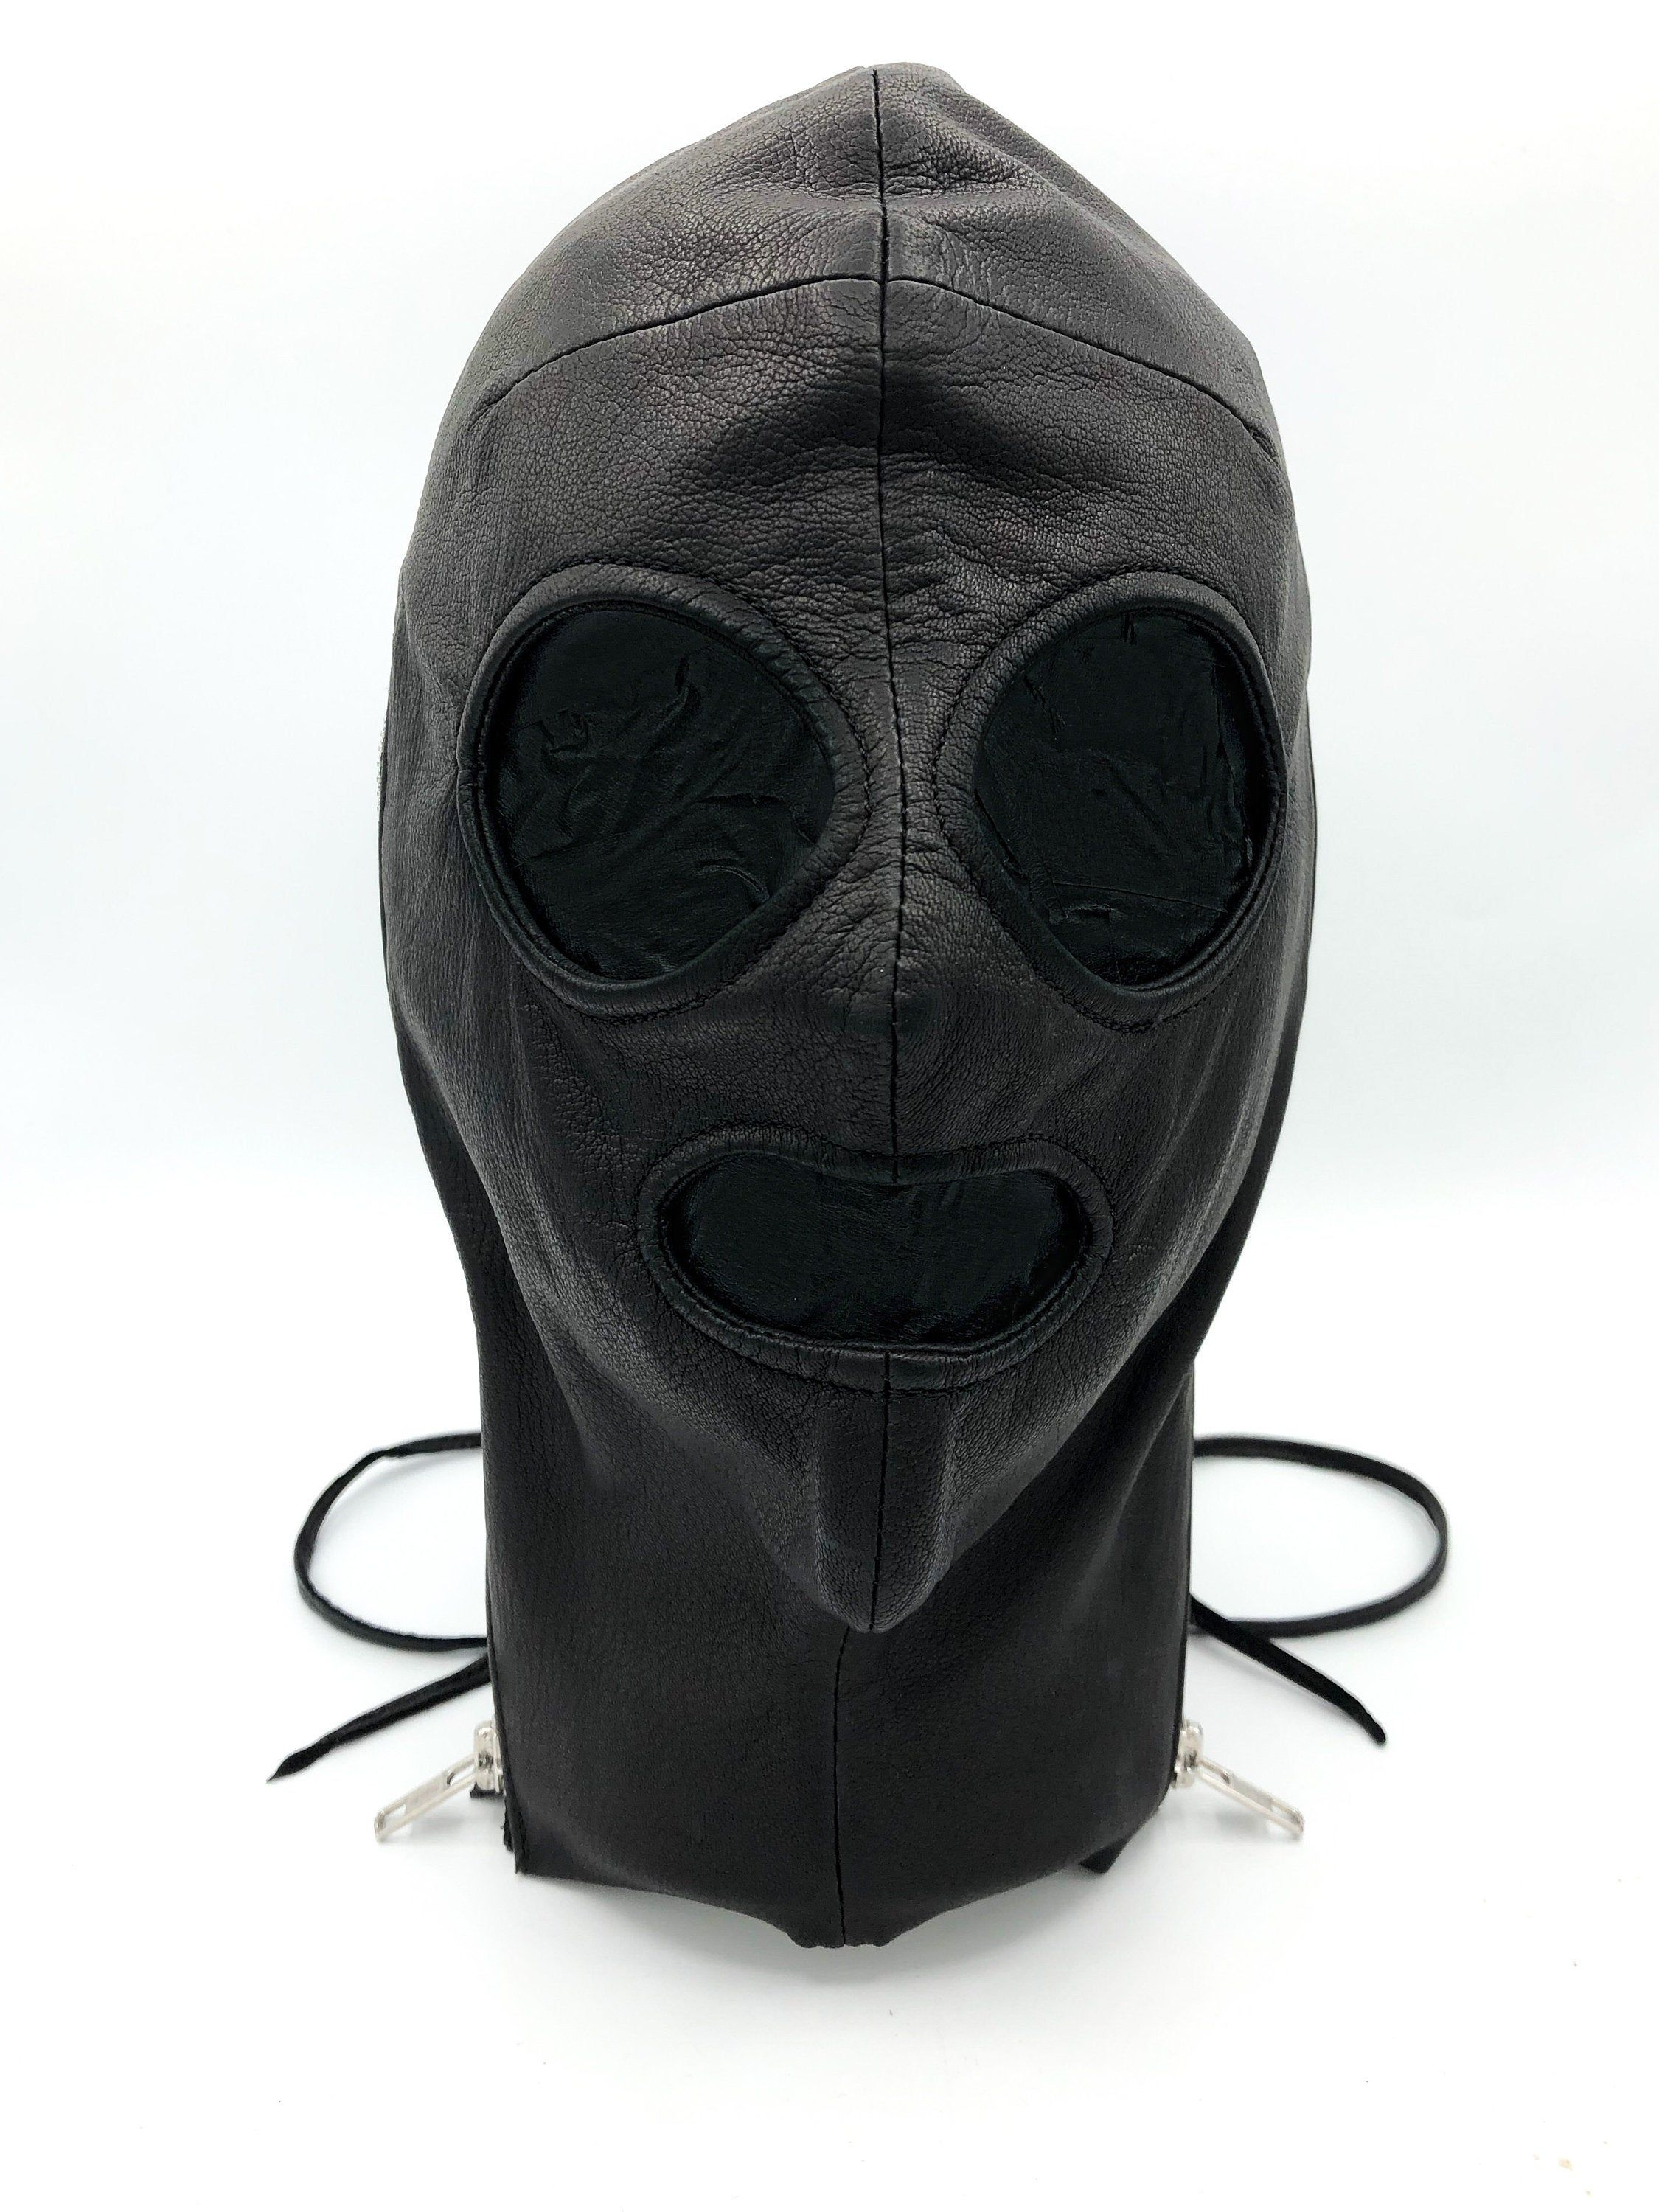 Incognito Black Leather Lace Up Mask Etsy In 2020 Leather Black Leather Leather Mask